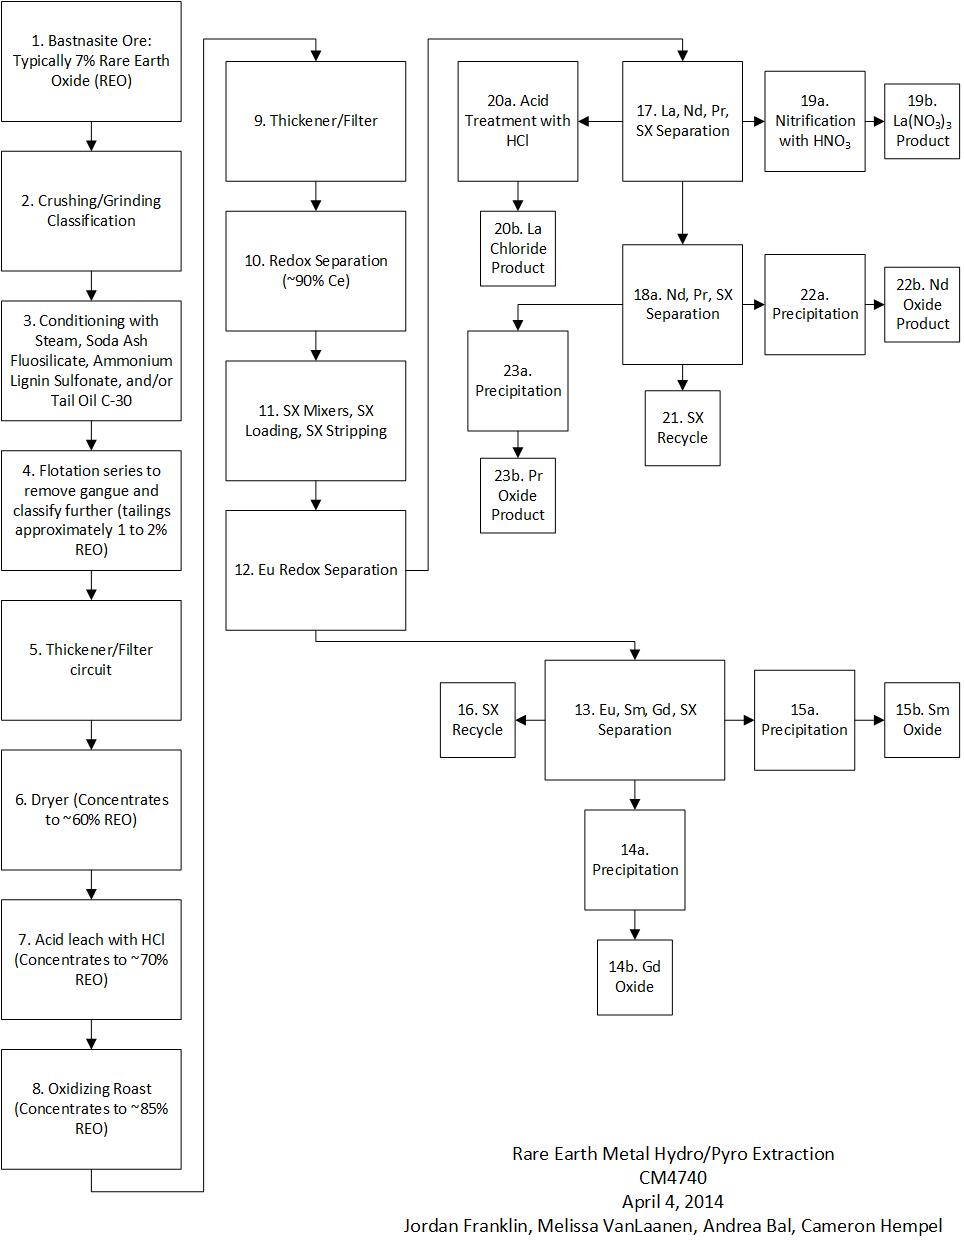 Process Flow Charts: Pyrometallury rare earth metal extraction from bastnastie ore ,Chart